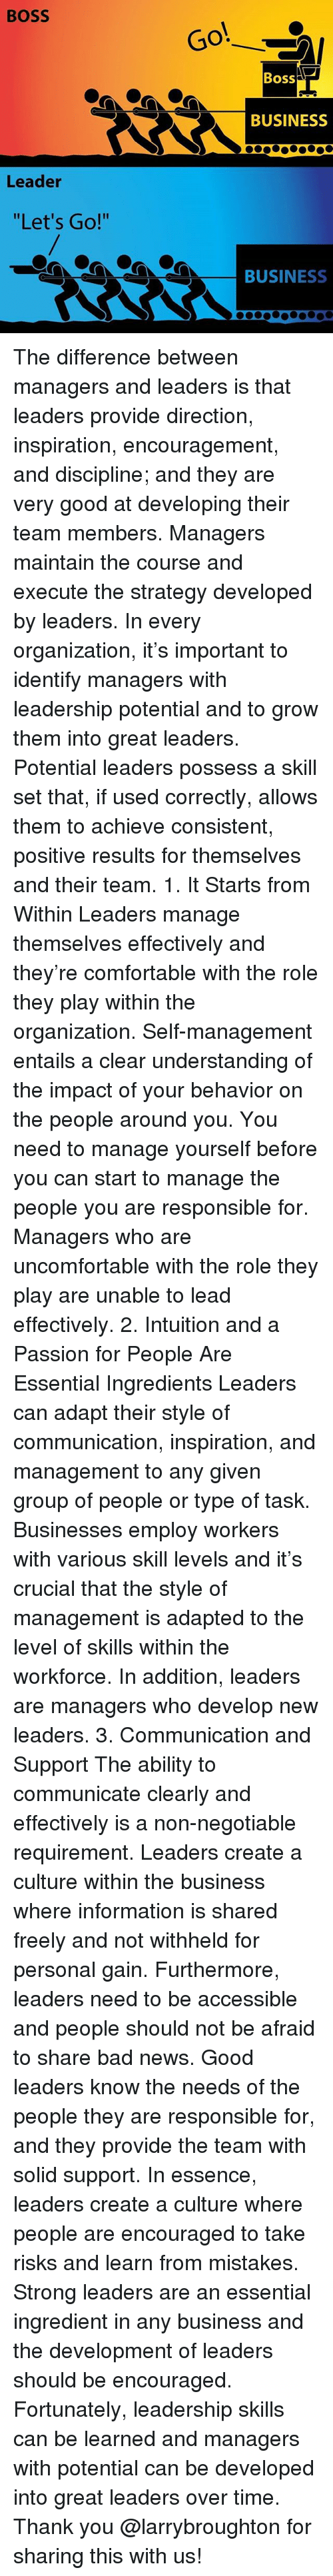 managers should adapt their leadership style Team members were turned off by his rigid management style could better feel their leadership to adapt his leadership style to improve his.